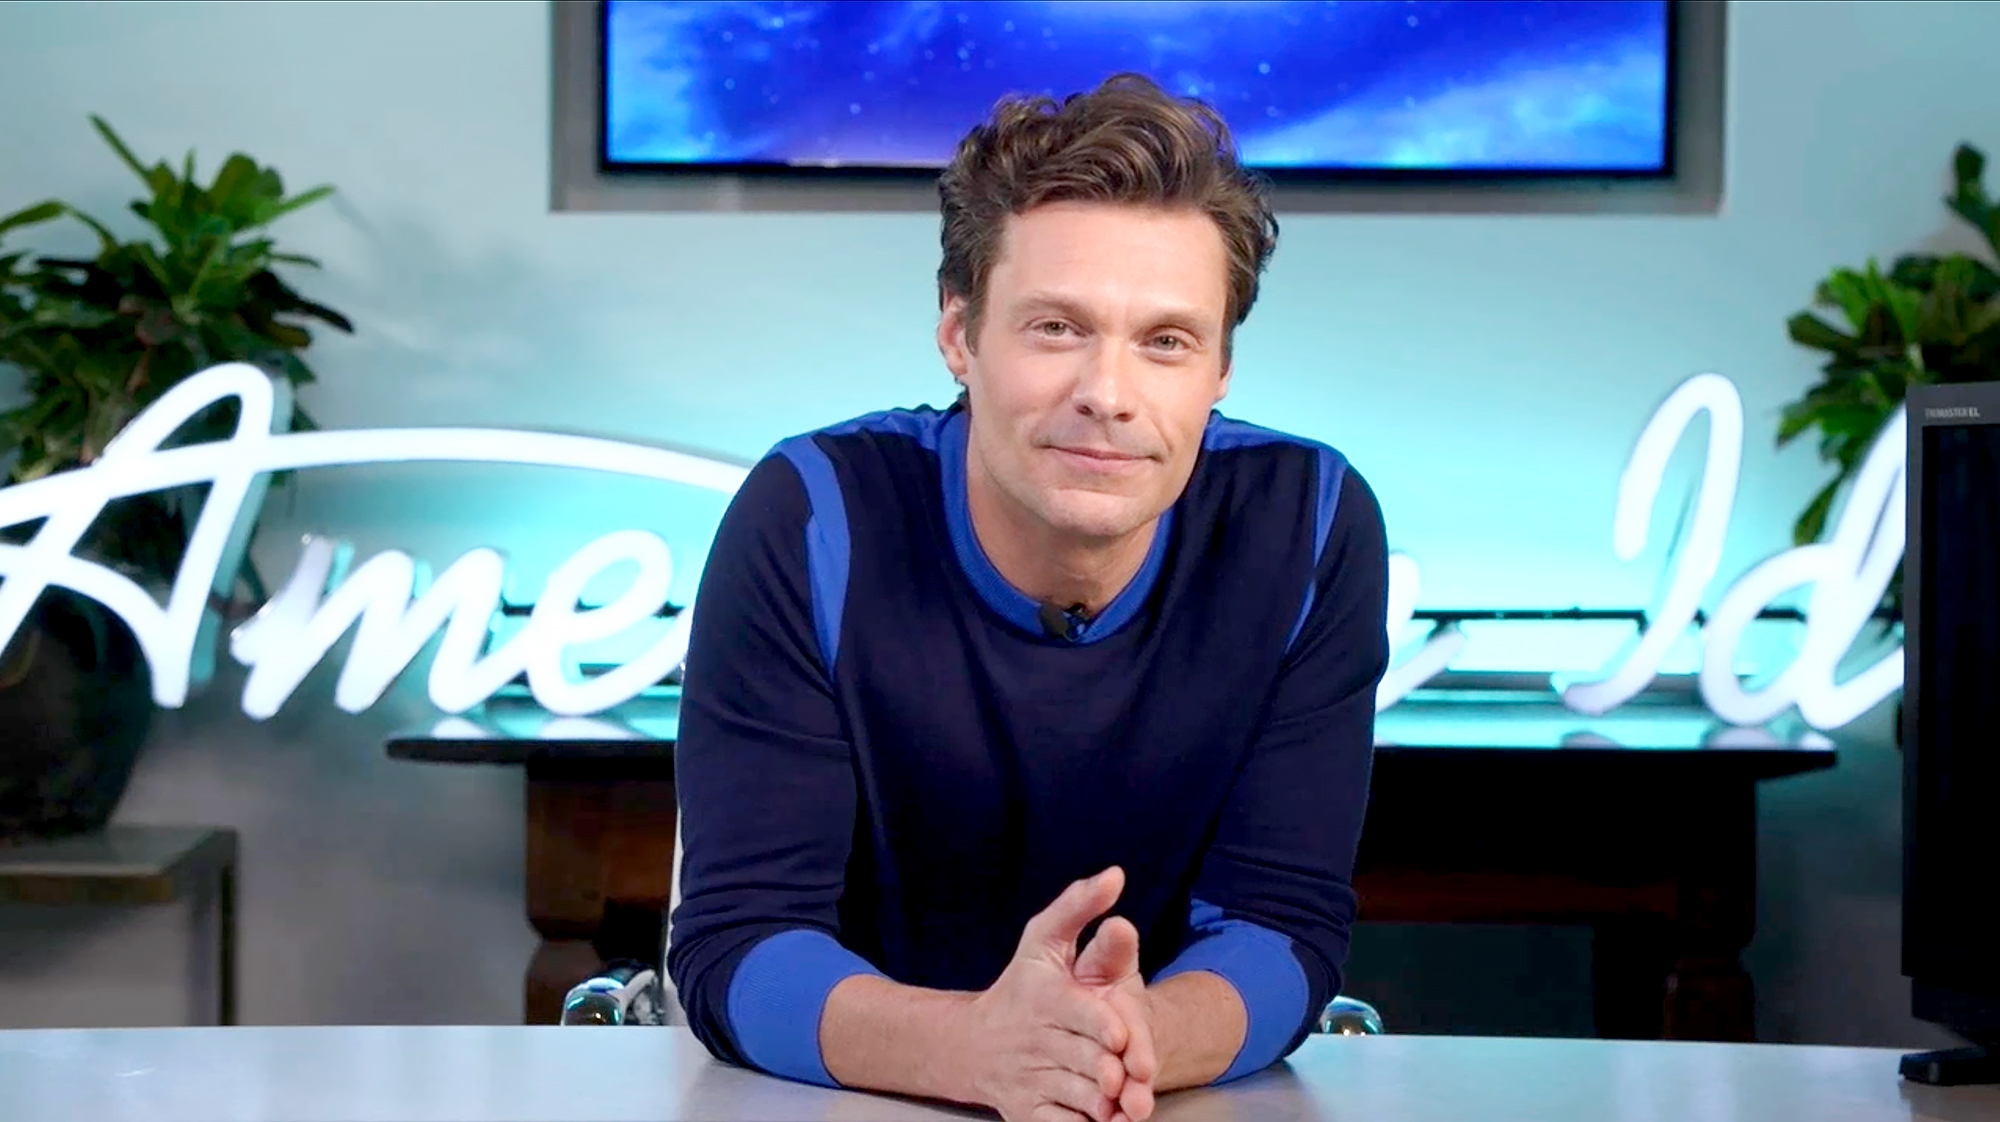 Ryan Seacrest Skips Live With Kelly and Ryan After American Idol Finale